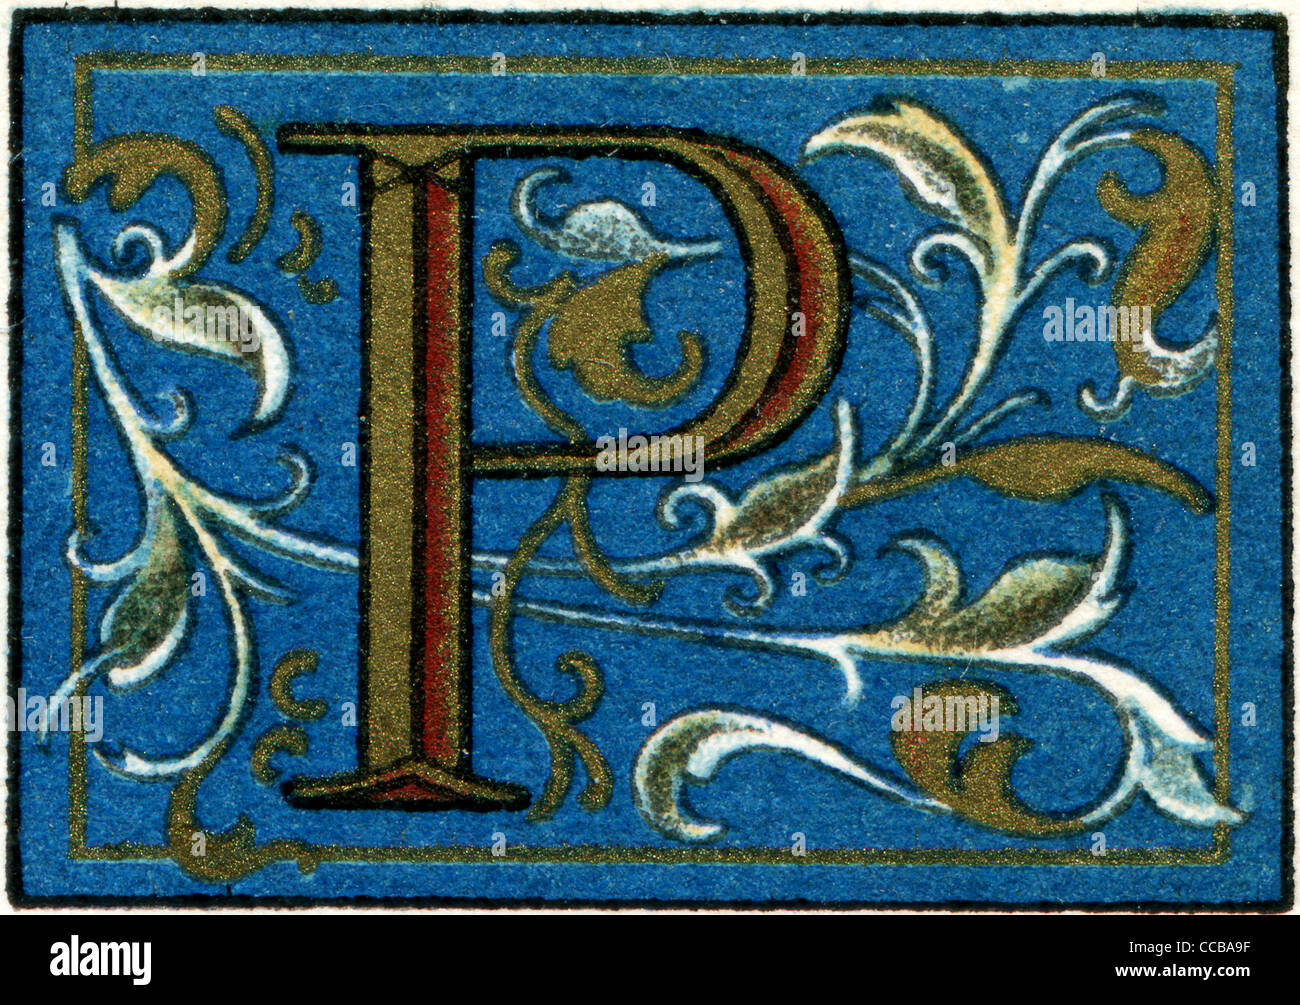 Italian initials. Publication of the book 'Meyers Konversations-Lexikon', Volume 7, Berlin, Germany, 1910 - Stock Image